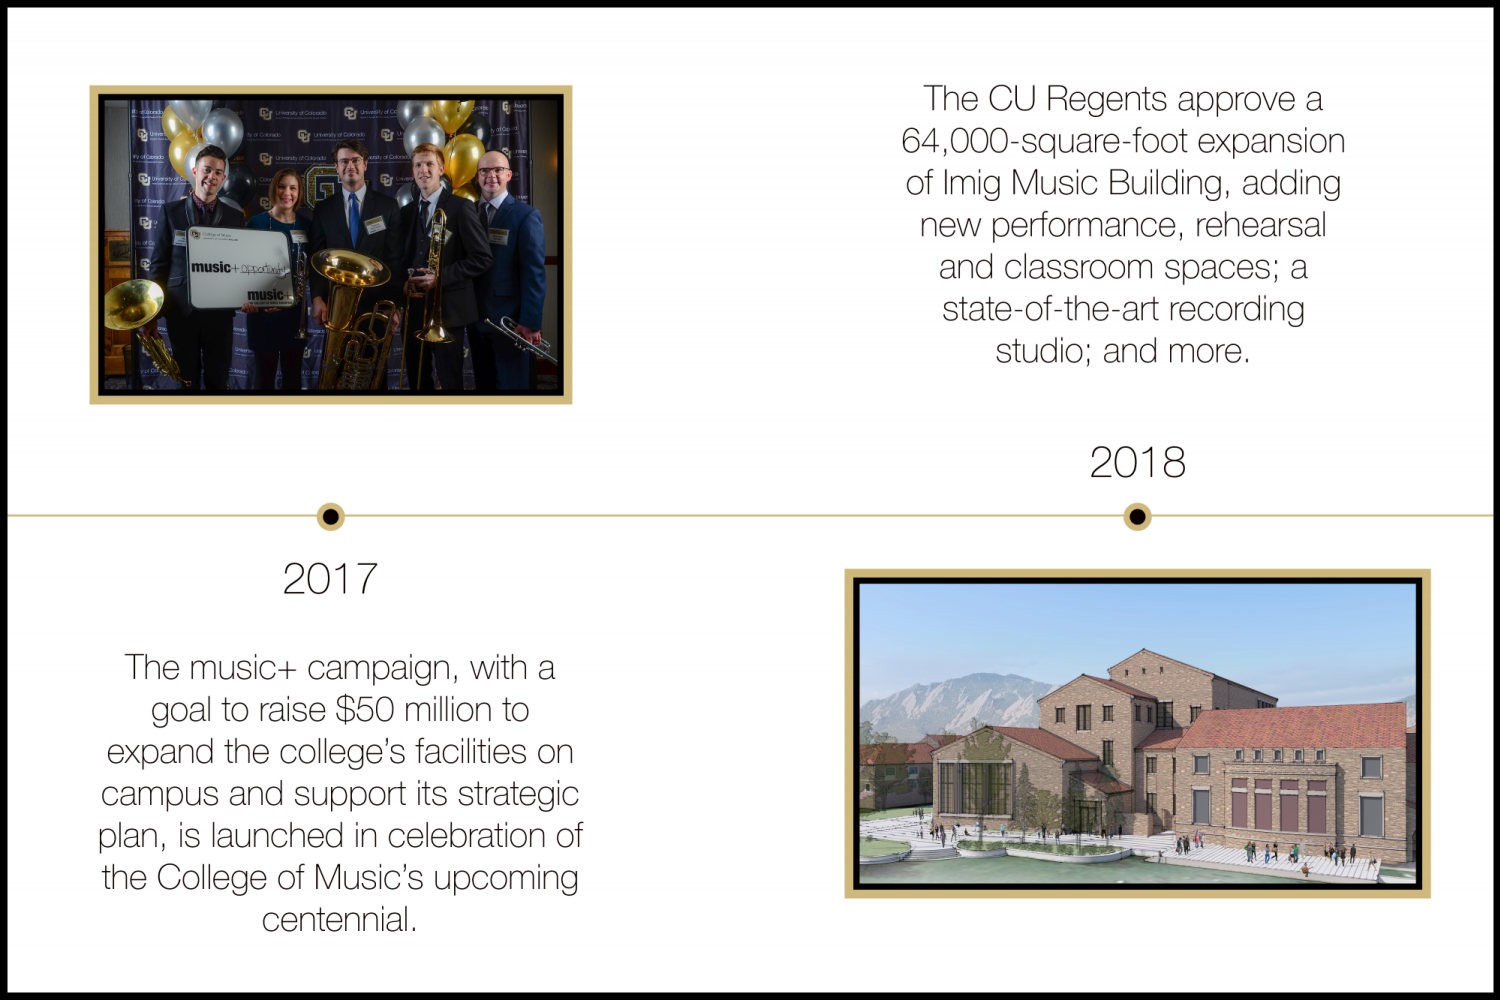 music+ and expansion